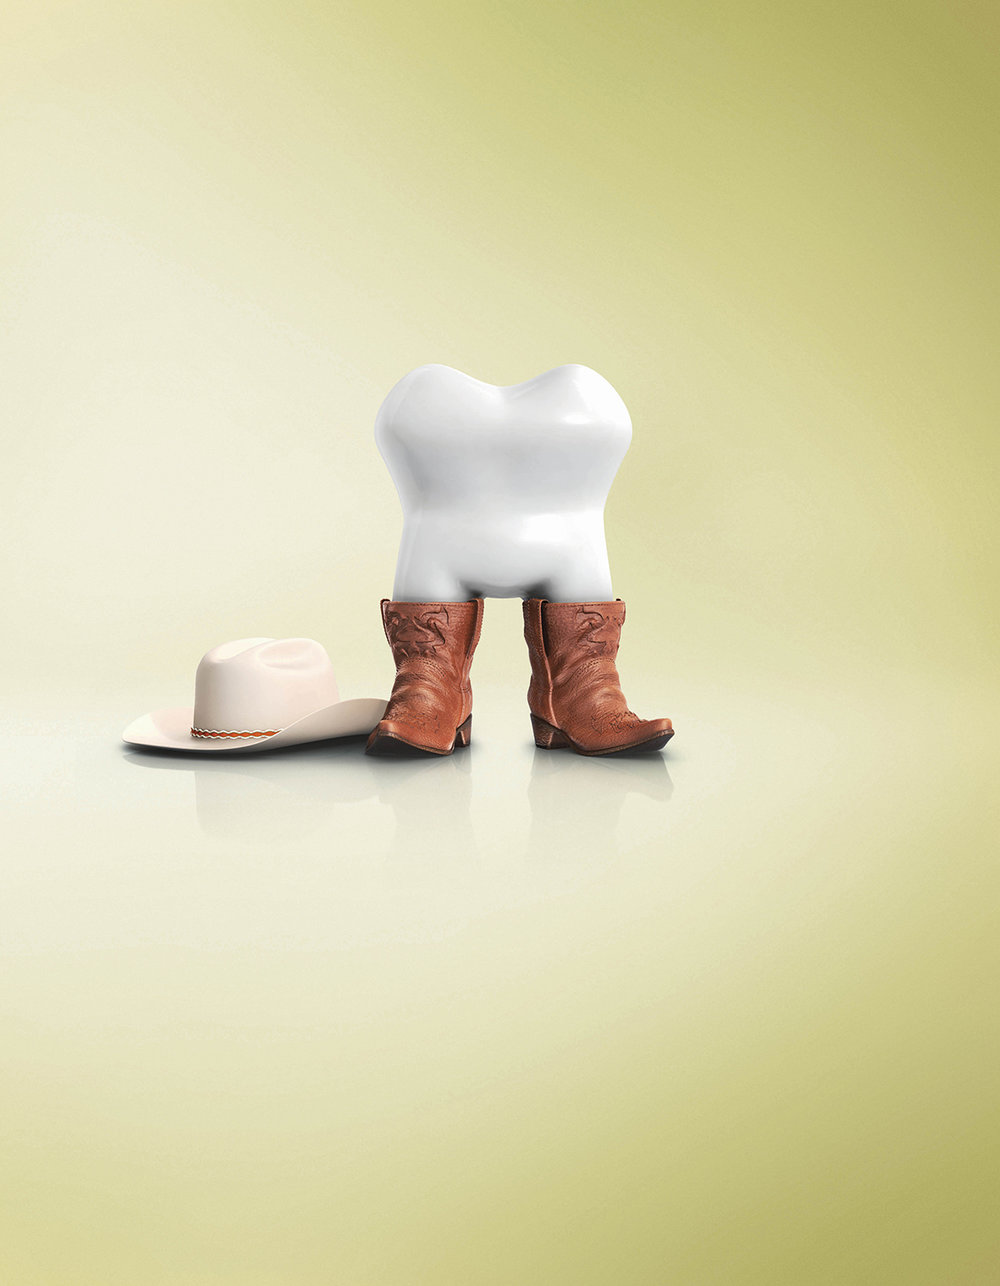 AGENCY-MEYOCKS GROUP > ART DIRECTOR-KARI MOYER > CLIENT-DELTA DENTAL  100% CGI